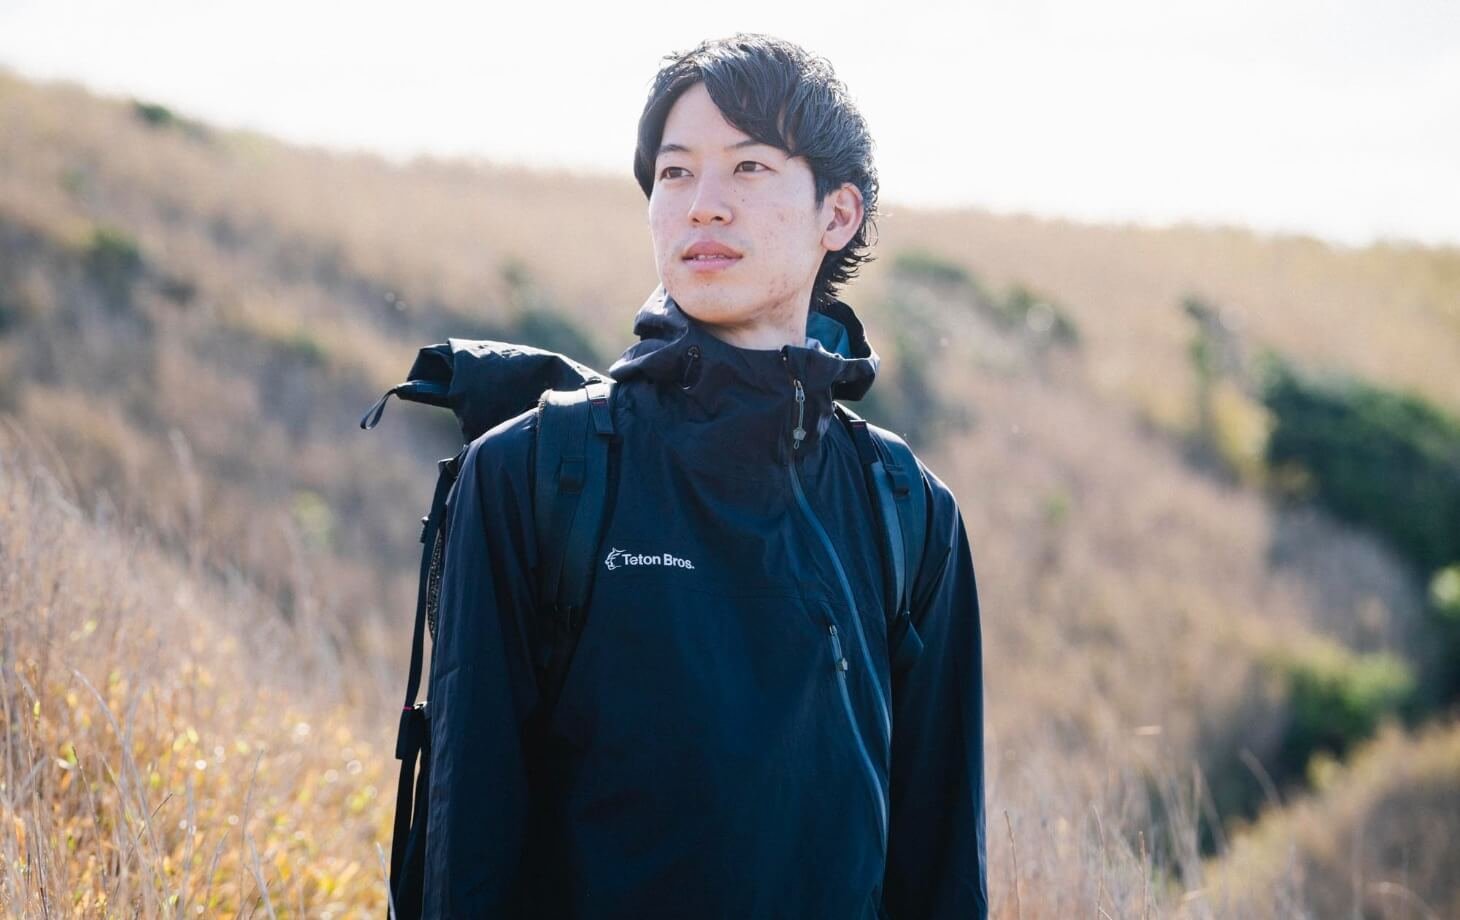 Tsurugi Lite Jacket For Mountain